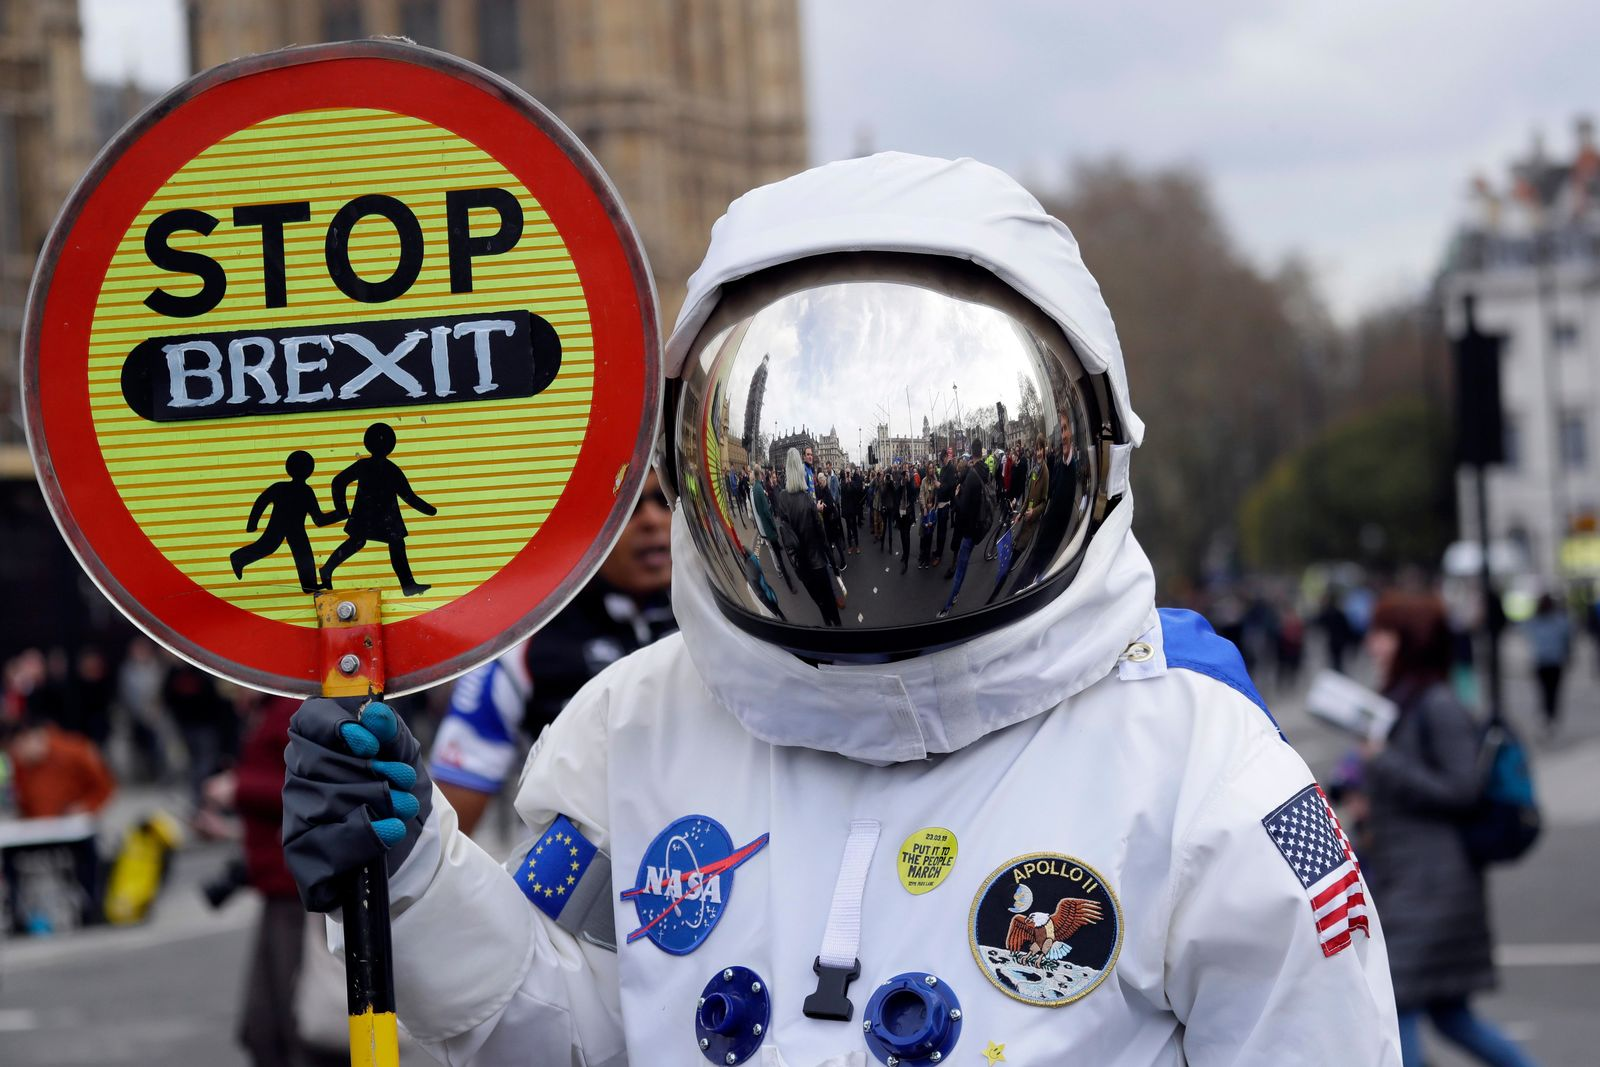 A demonstrator in an astronaut suit carries a sign during a Peoples Vote anti-Brexit march in London, Saturday, March 23, 2019.{ } (AP Photo/Kirsty Wigglesworth)